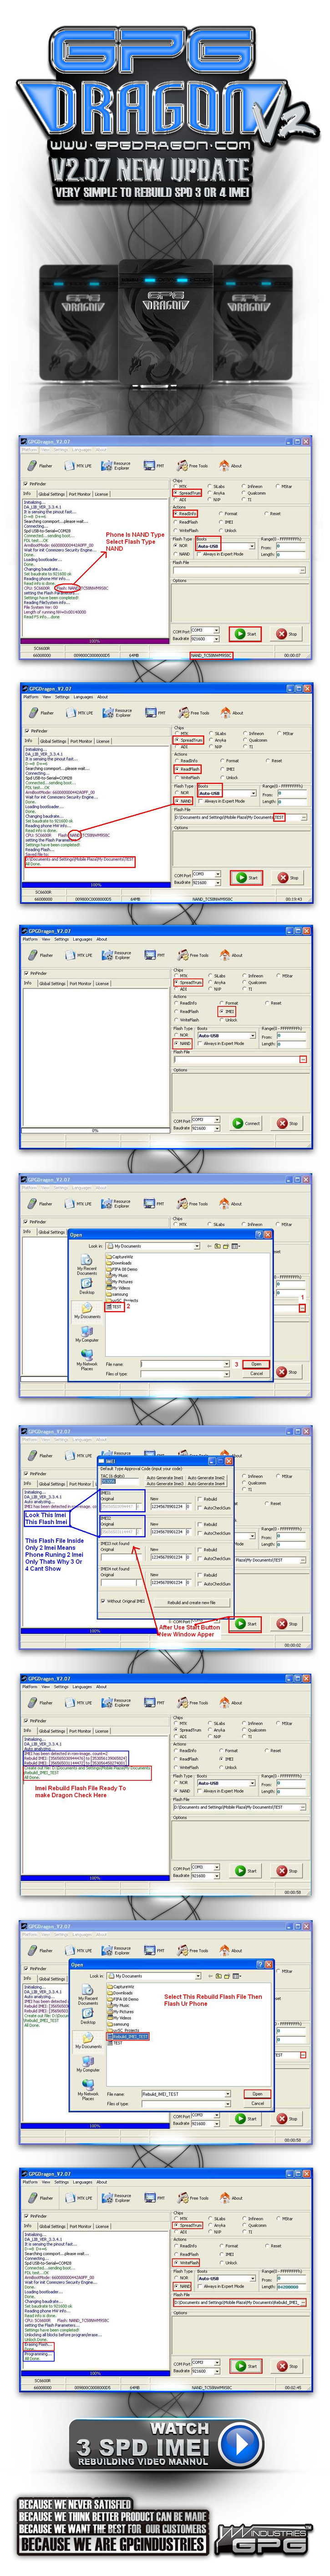 2011 06 14 Dragon207 New Update Very Simple To Rebuild SPD 2 OR 3 Imei 725